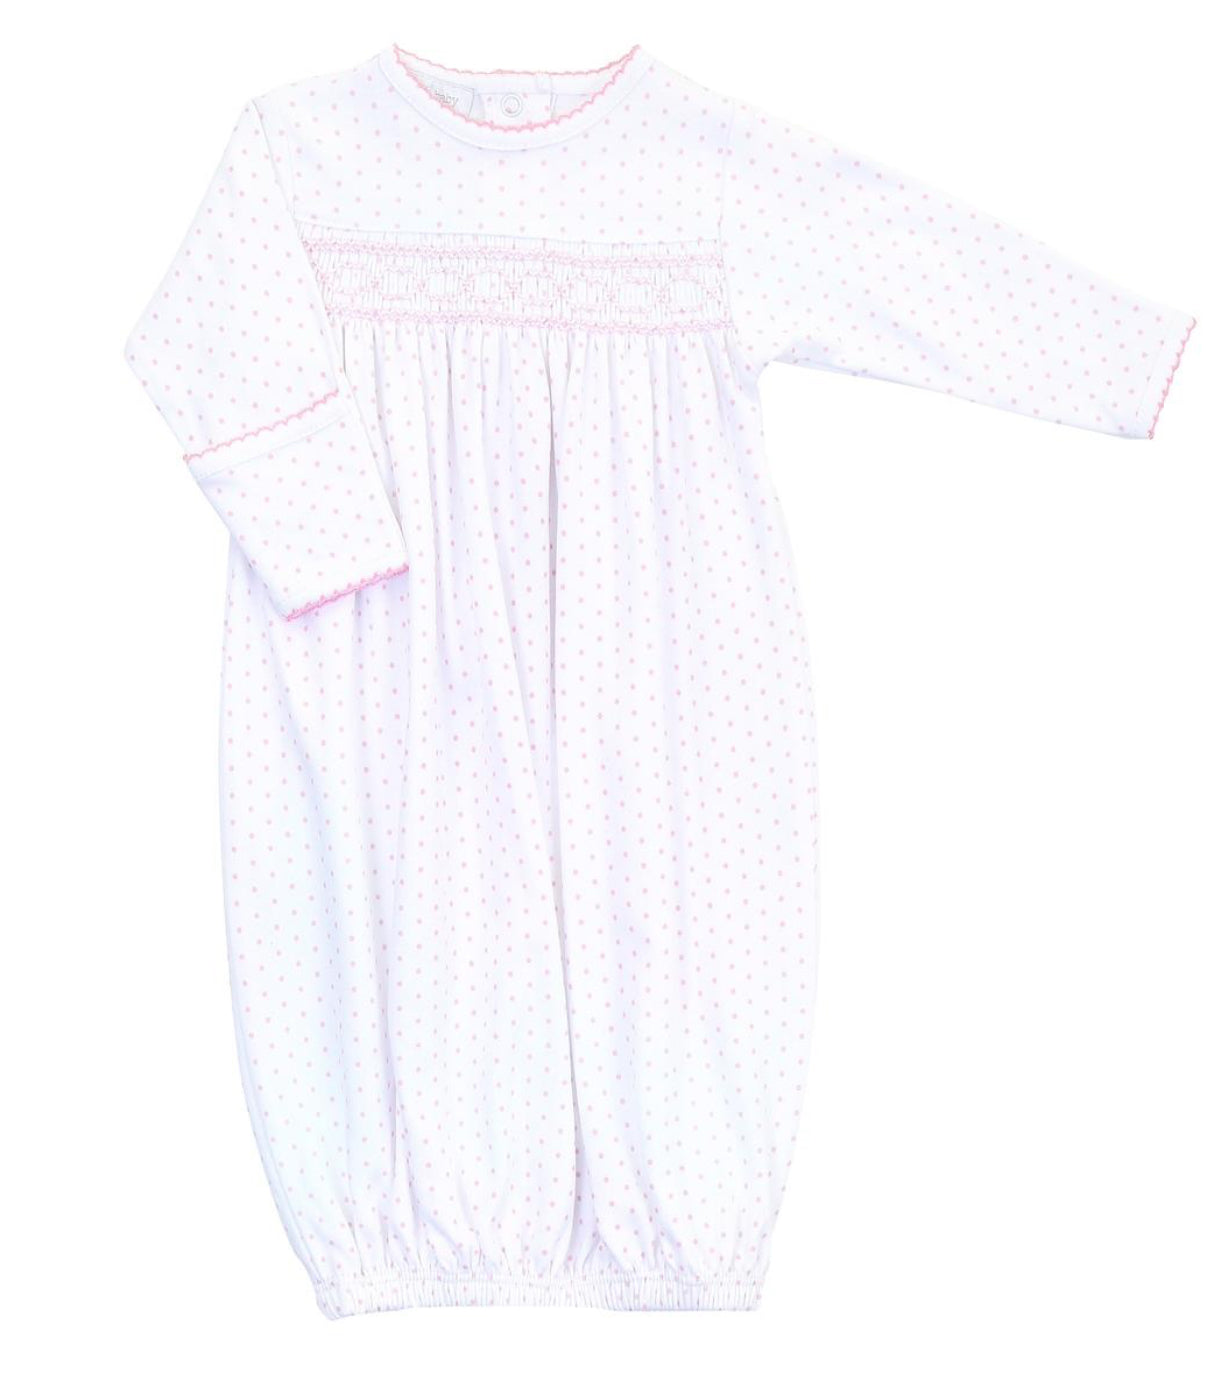 Magnolia Baby Pink Mini Dot Smocked Baby Gown